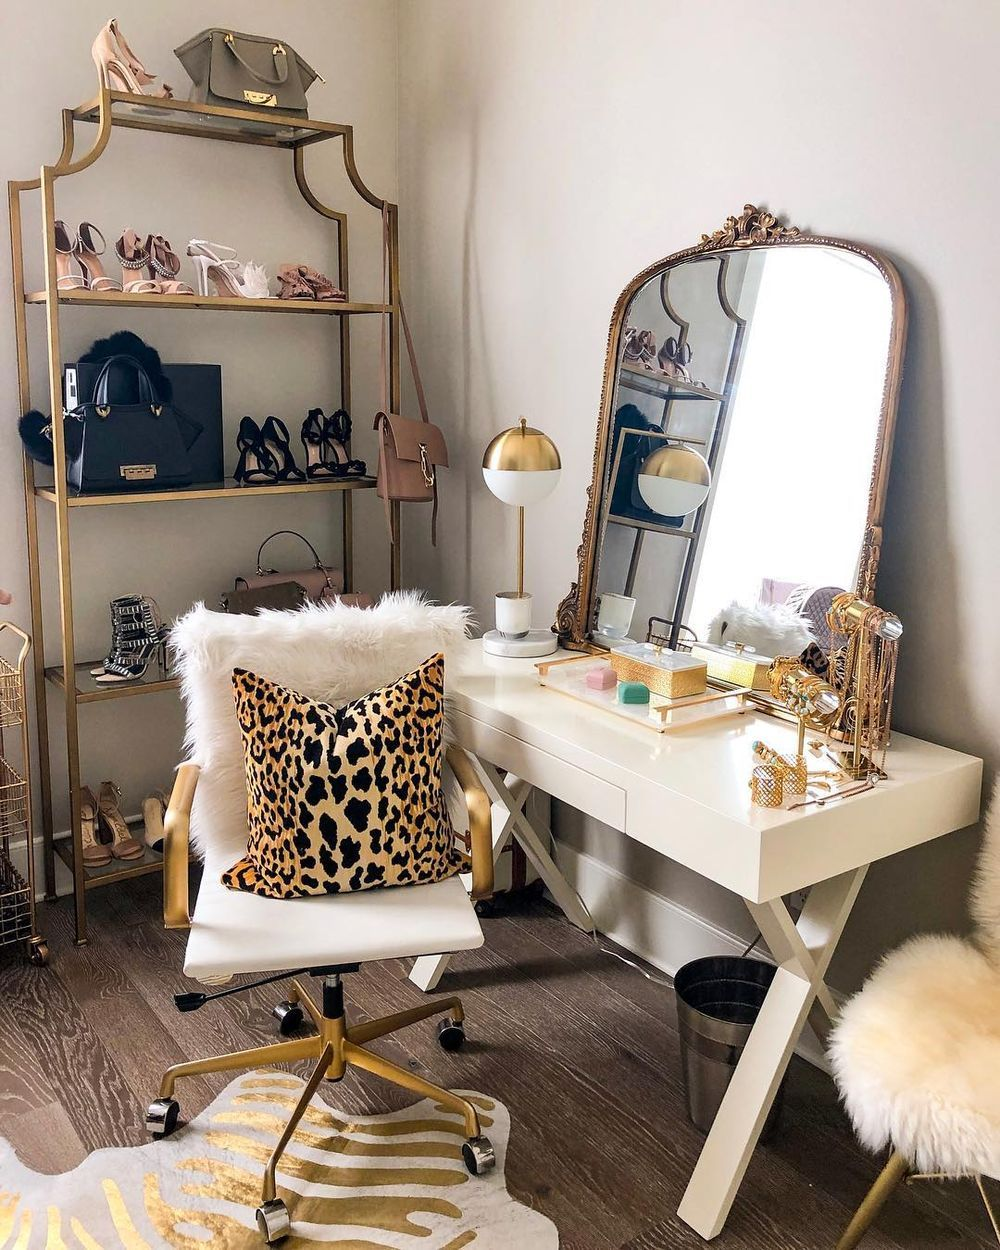 15 Ways To Get The Modern Glamorous Decor Look In Your Home | Stylish Bedroom, How To Organize Your Closet, Dressing Table Organisation